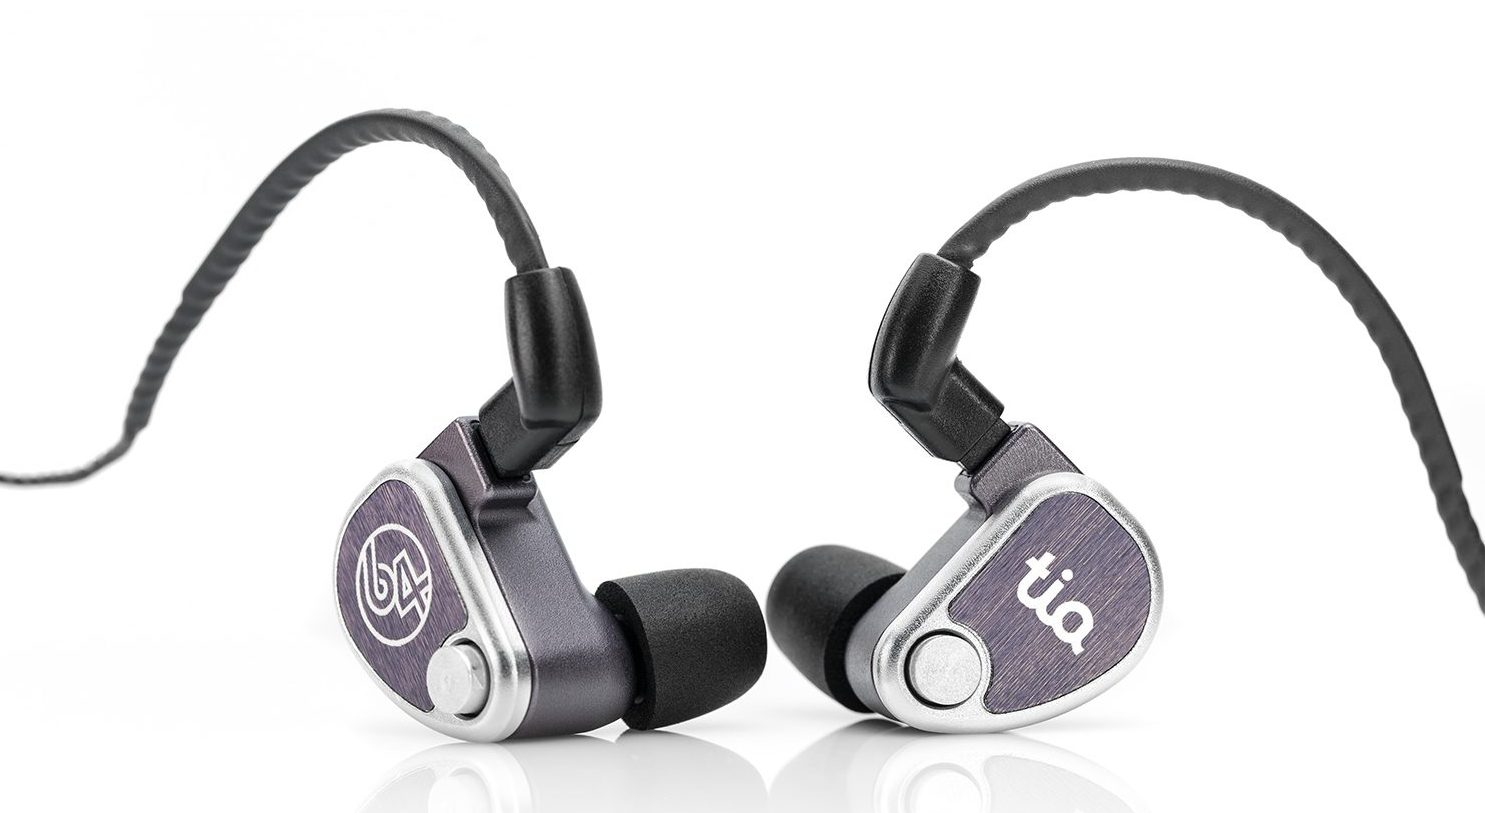 tintucaudio, 64 audio, tia u12t